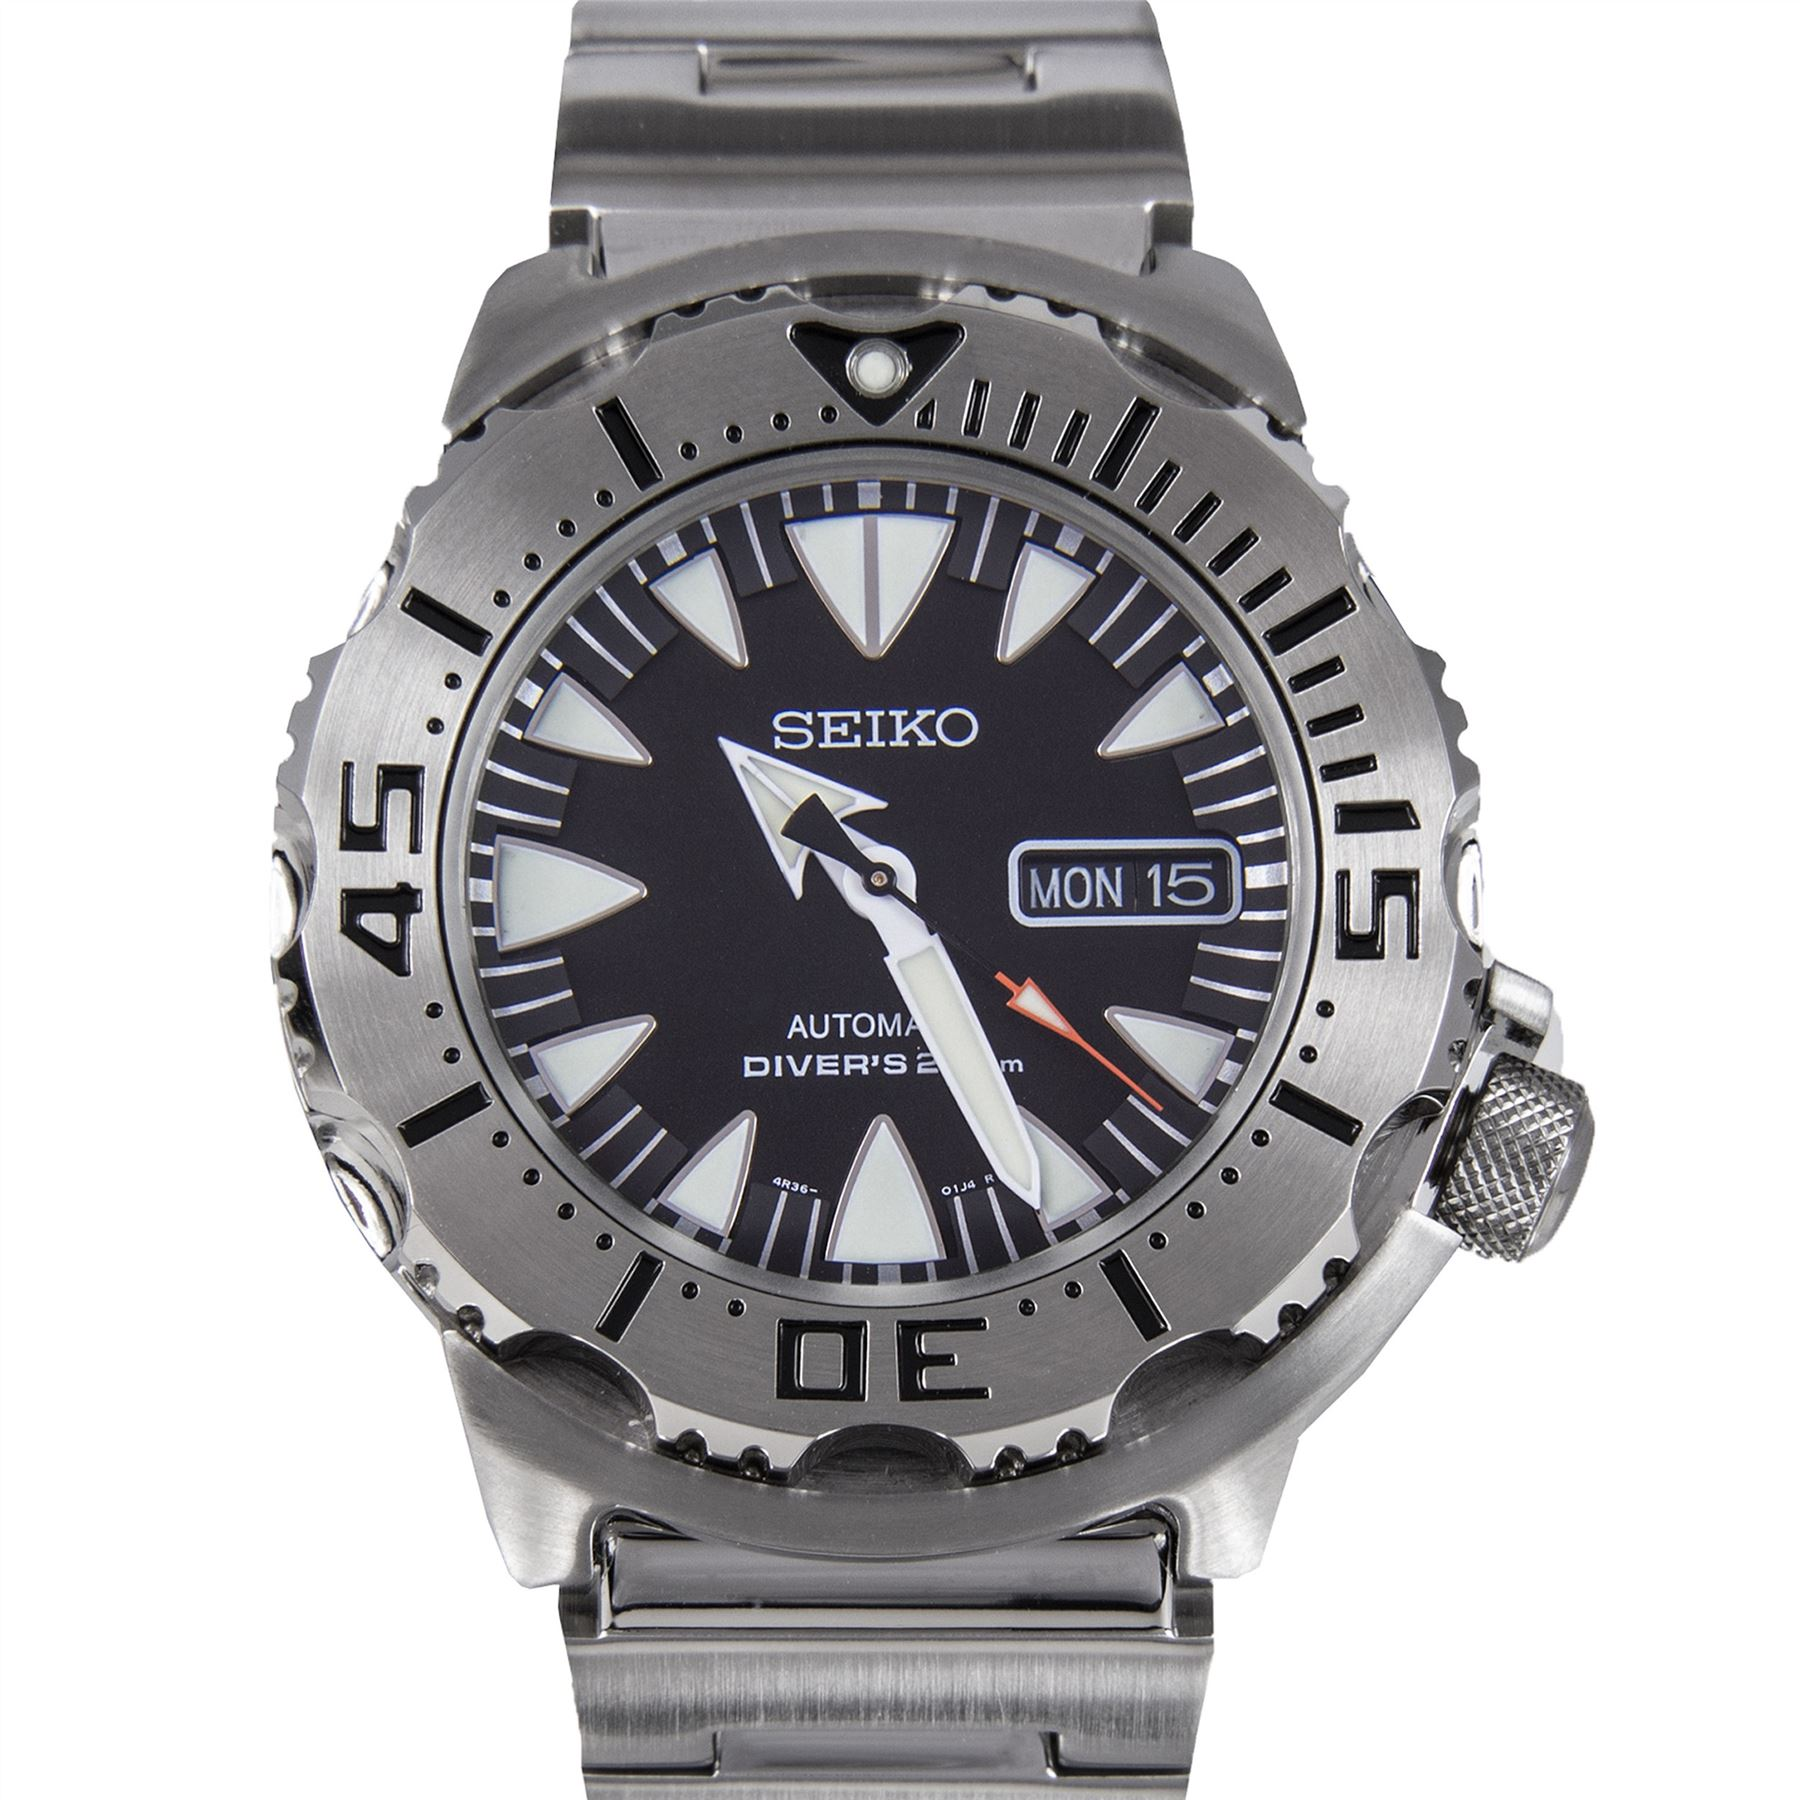 Seiko automatic divers monster watch srp307k1 srp307k2 srp315k2 ebay - Seiko dive watch history ...